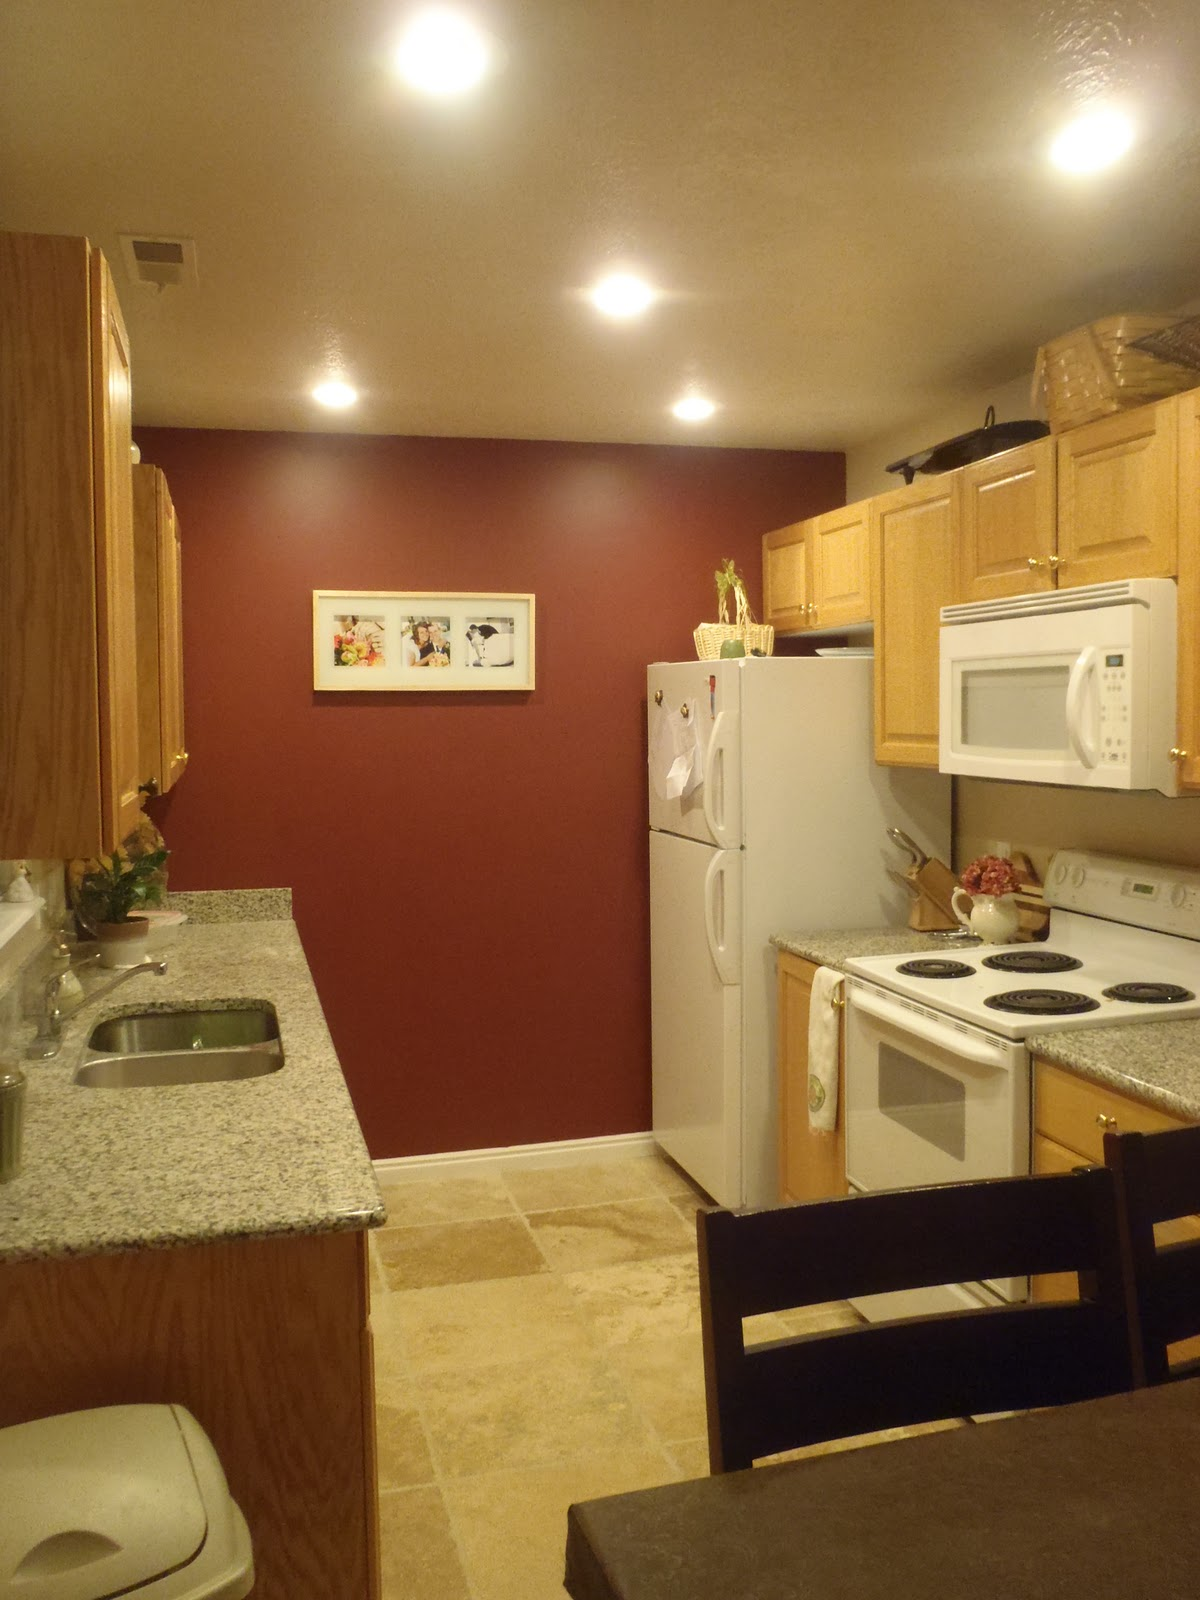 Remodelaholic | Replacing Florescent Kitchen Light With Can Lights